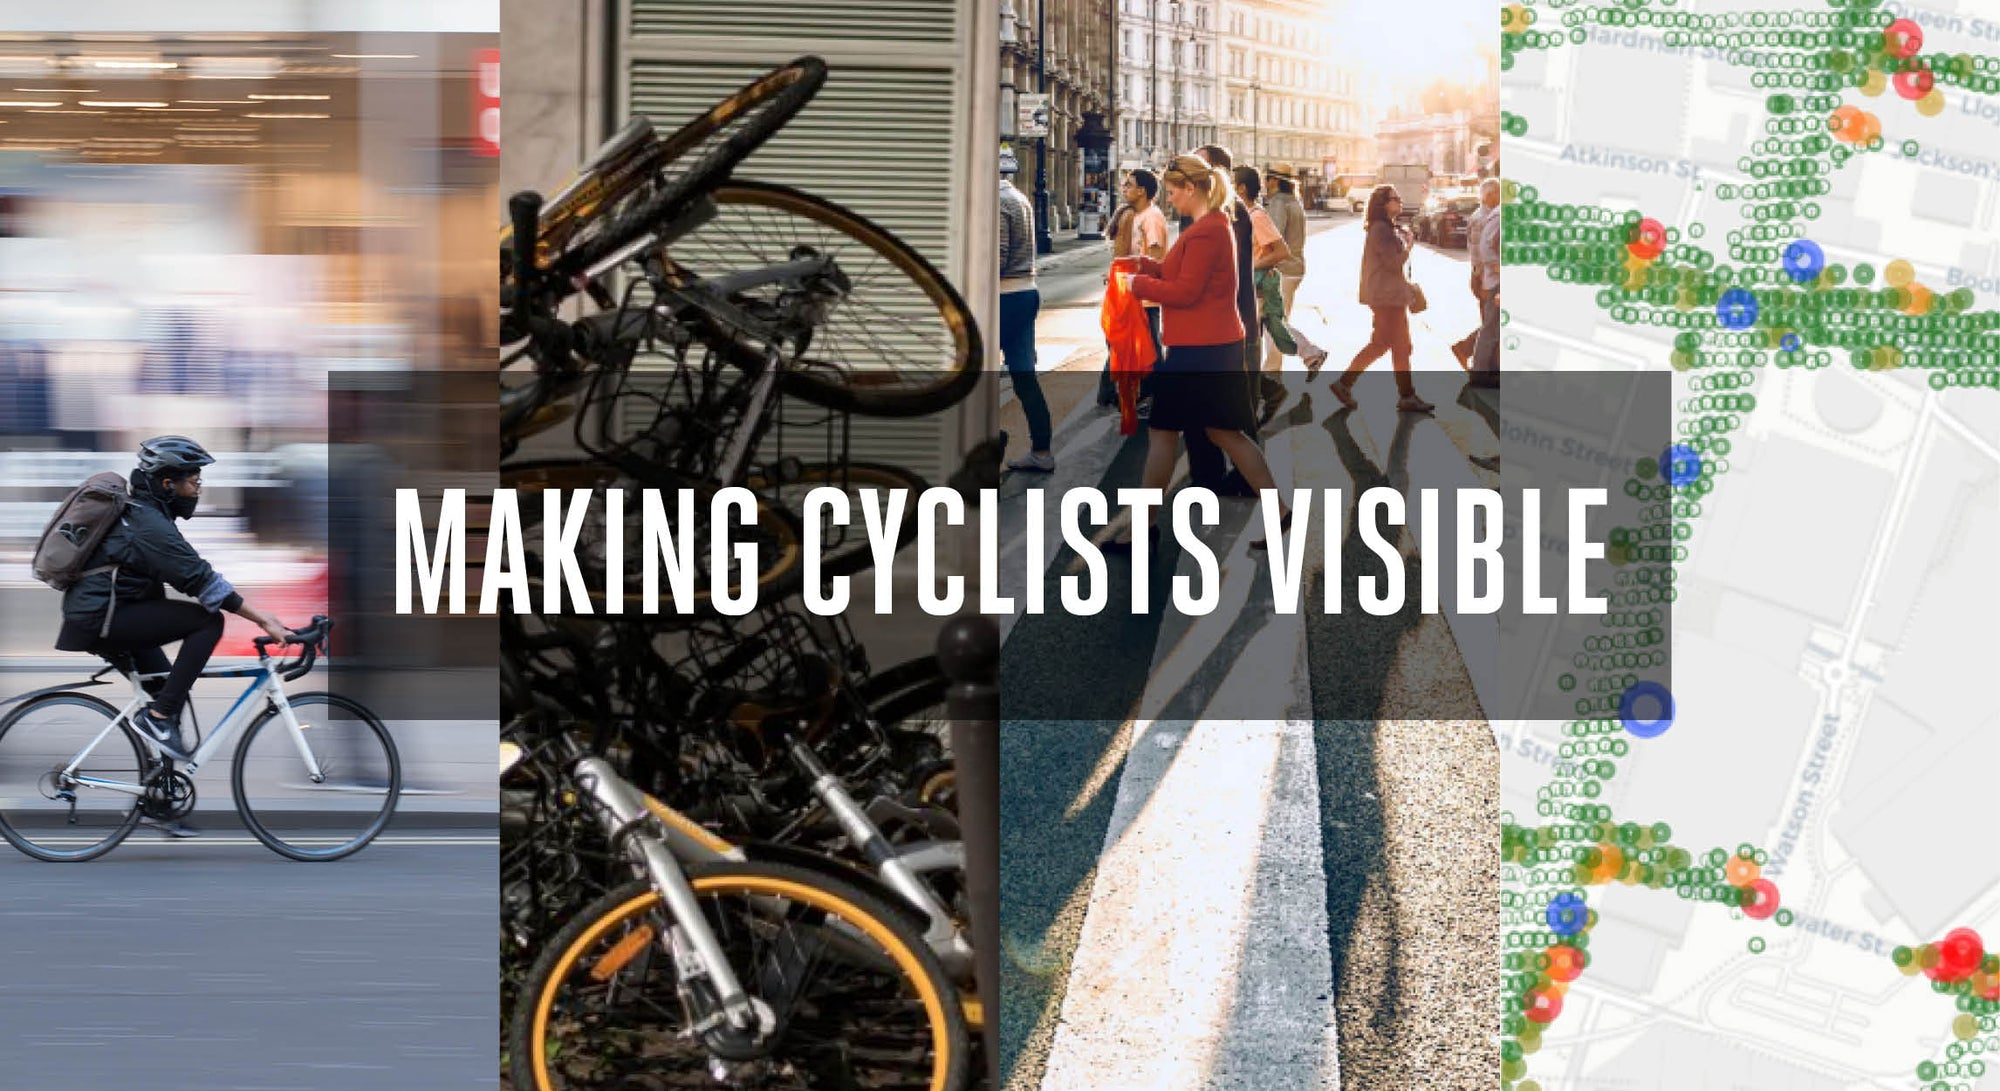 MAKING CYCLISTS VISIBLE | THE FUTURE OF CITY TRAVEL